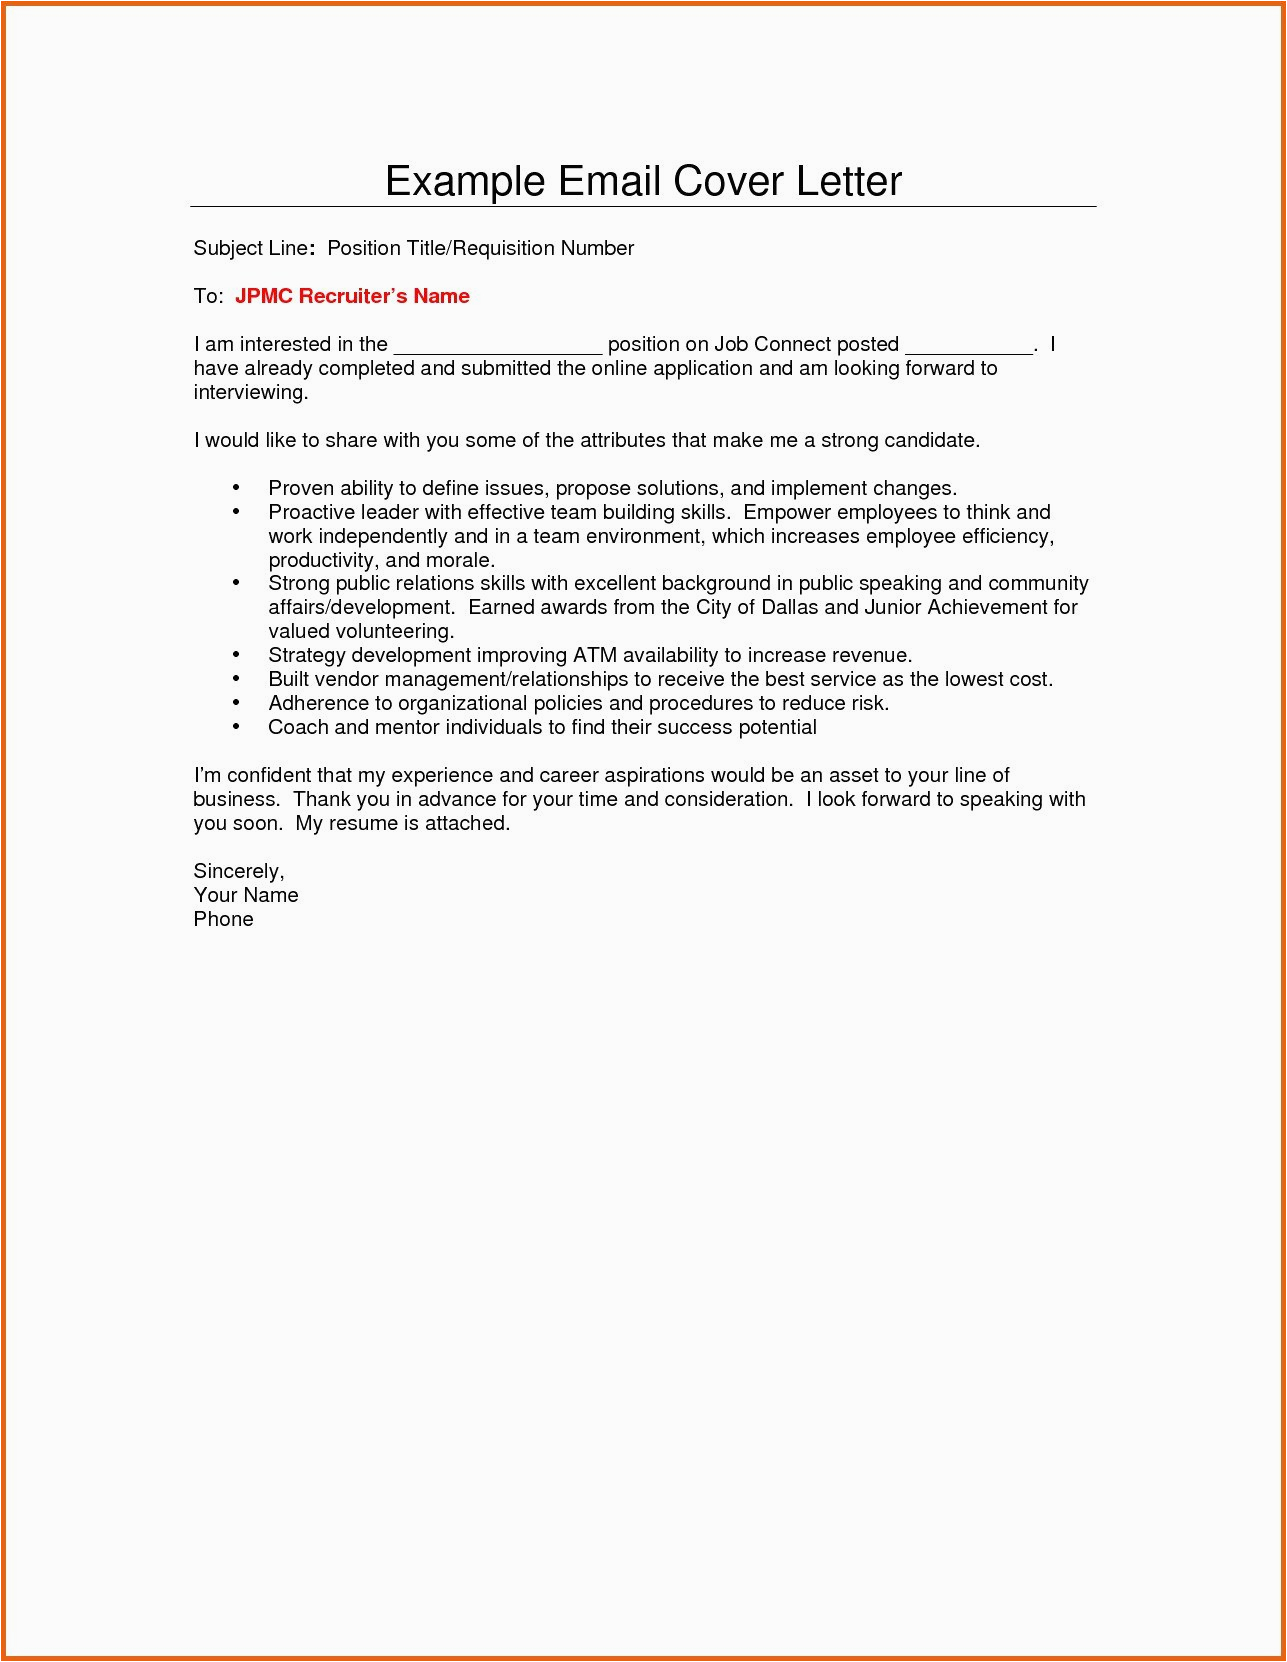 Email Sample to Recruiter with Resume Email to Recruiter with Resume